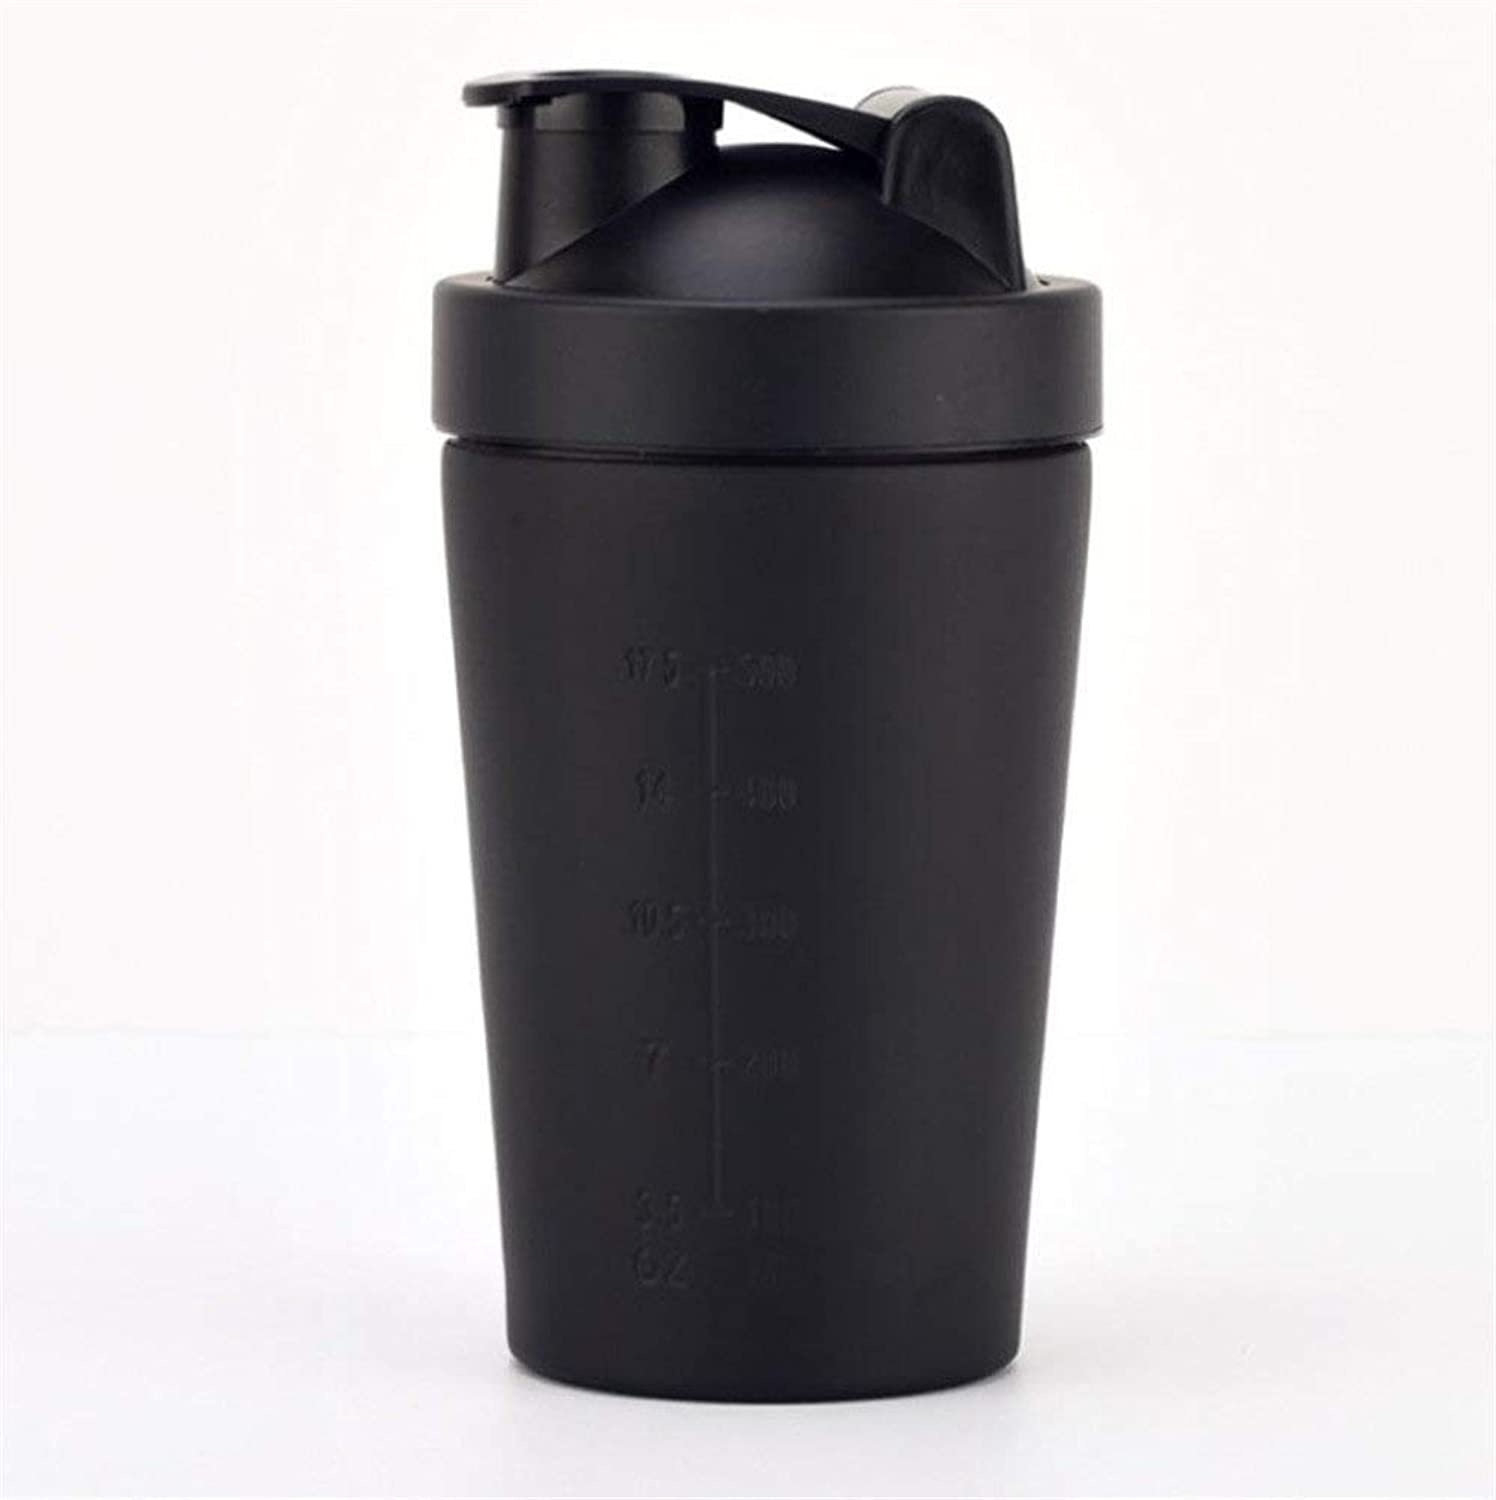 RUIMA Stainless Steel Predein Nutrition Powder Shake Cup Portable Handle Fitness Sports Cup Mixing Cup